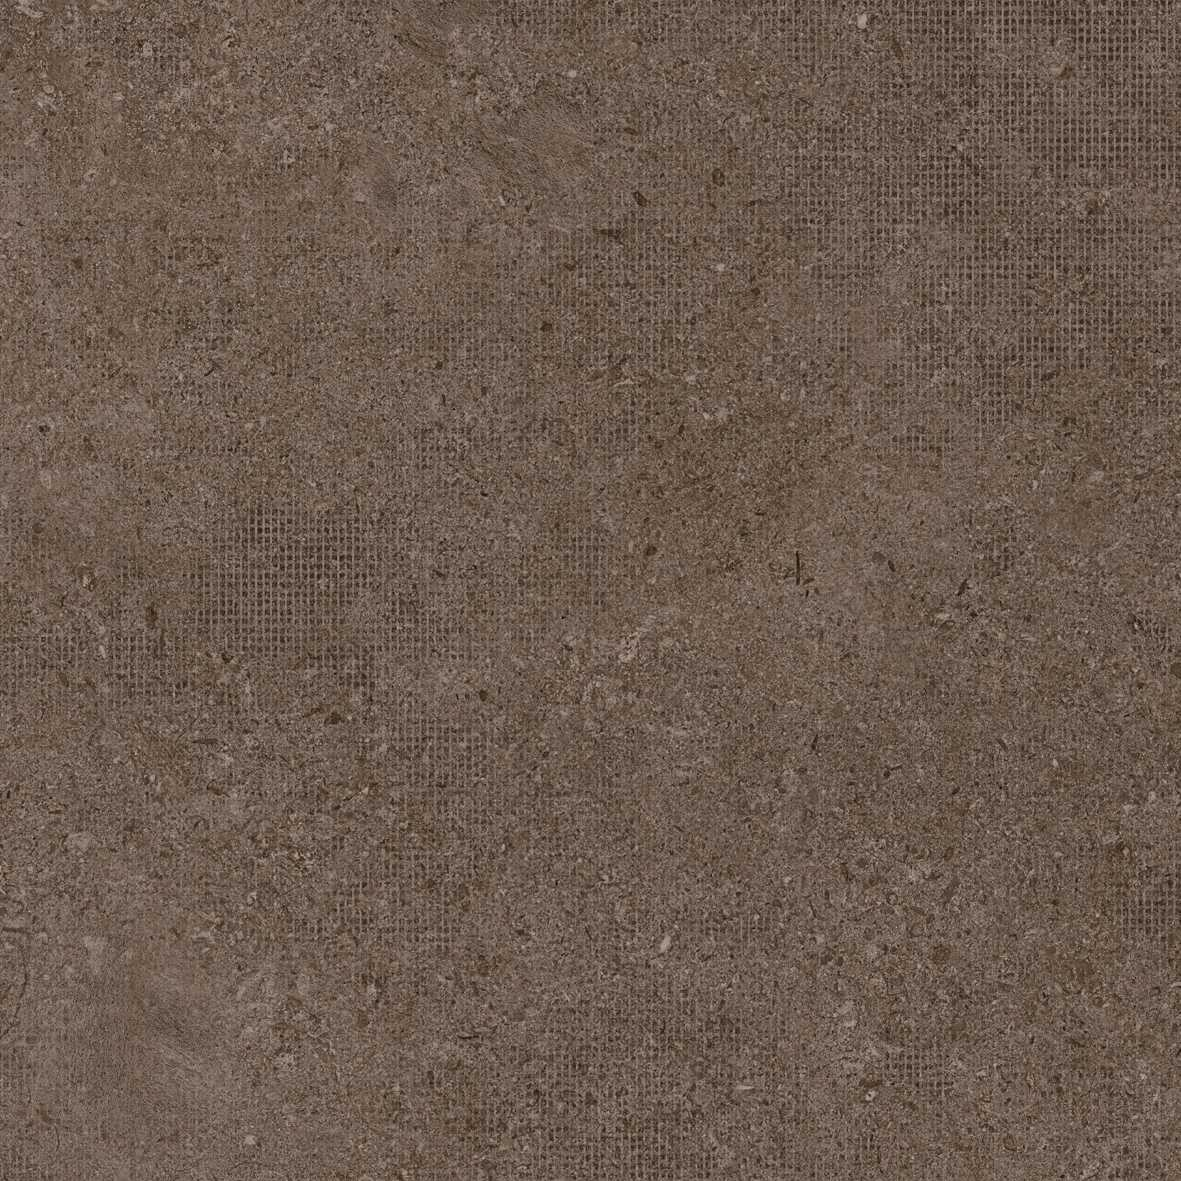 Variasi Aspen Beige  OutdoorOutdoor FlooringOutdoor Floor Tiles 2